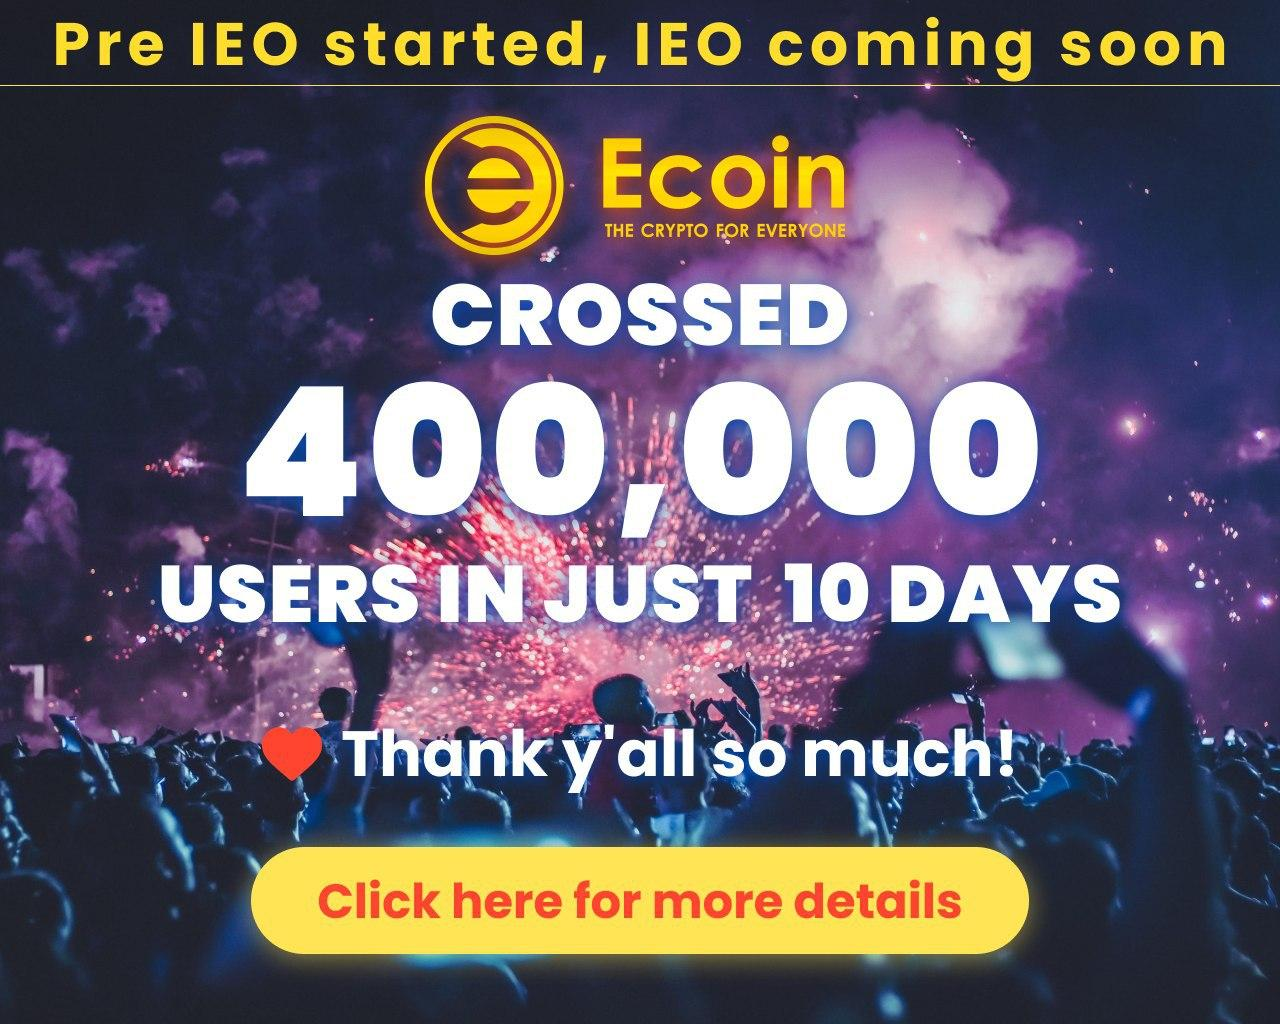 World's fastest growing cryptocurrency